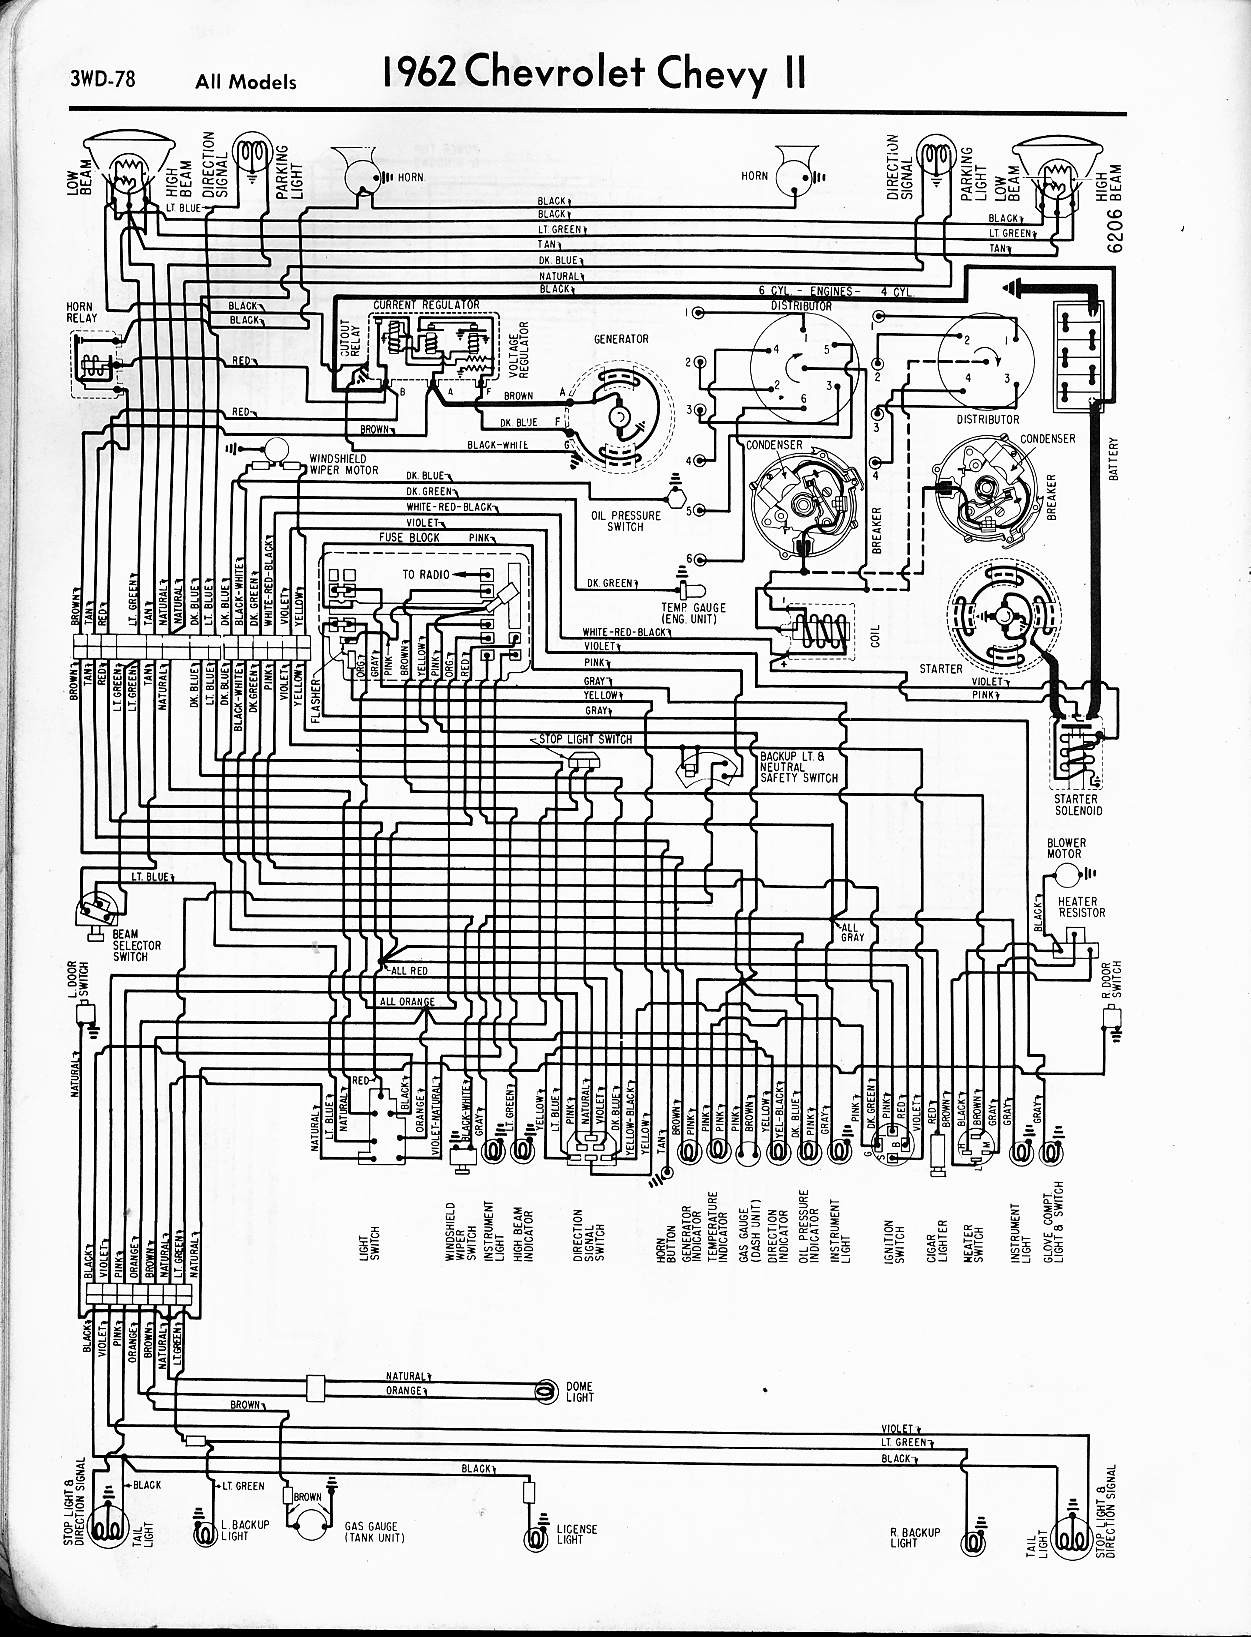 1968 Ford Ranger Solenoid Wiring Library 67 72 Chevy Truck Diagram 57 65 Diagrams Of